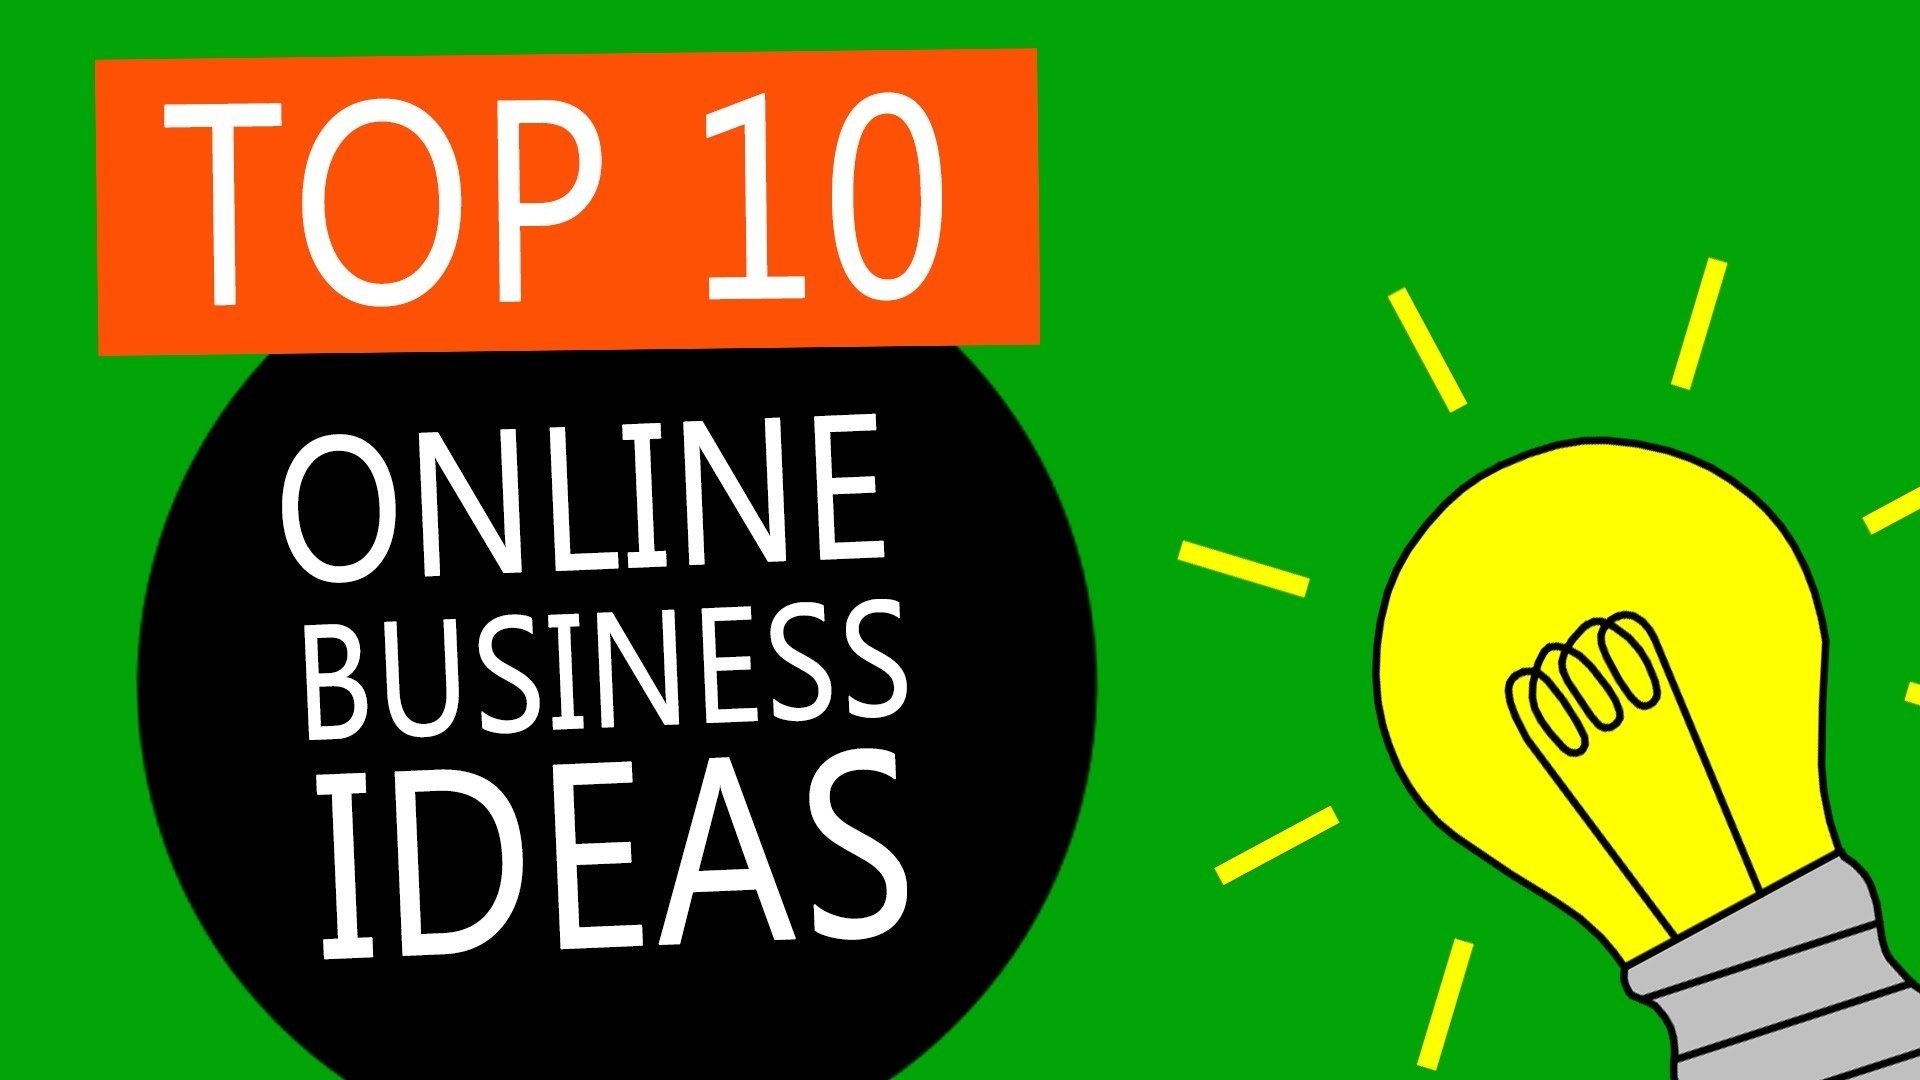 10 Stylish New Business Ideas To Start top 10 best online business ideas to start a small business youtube 1 2020